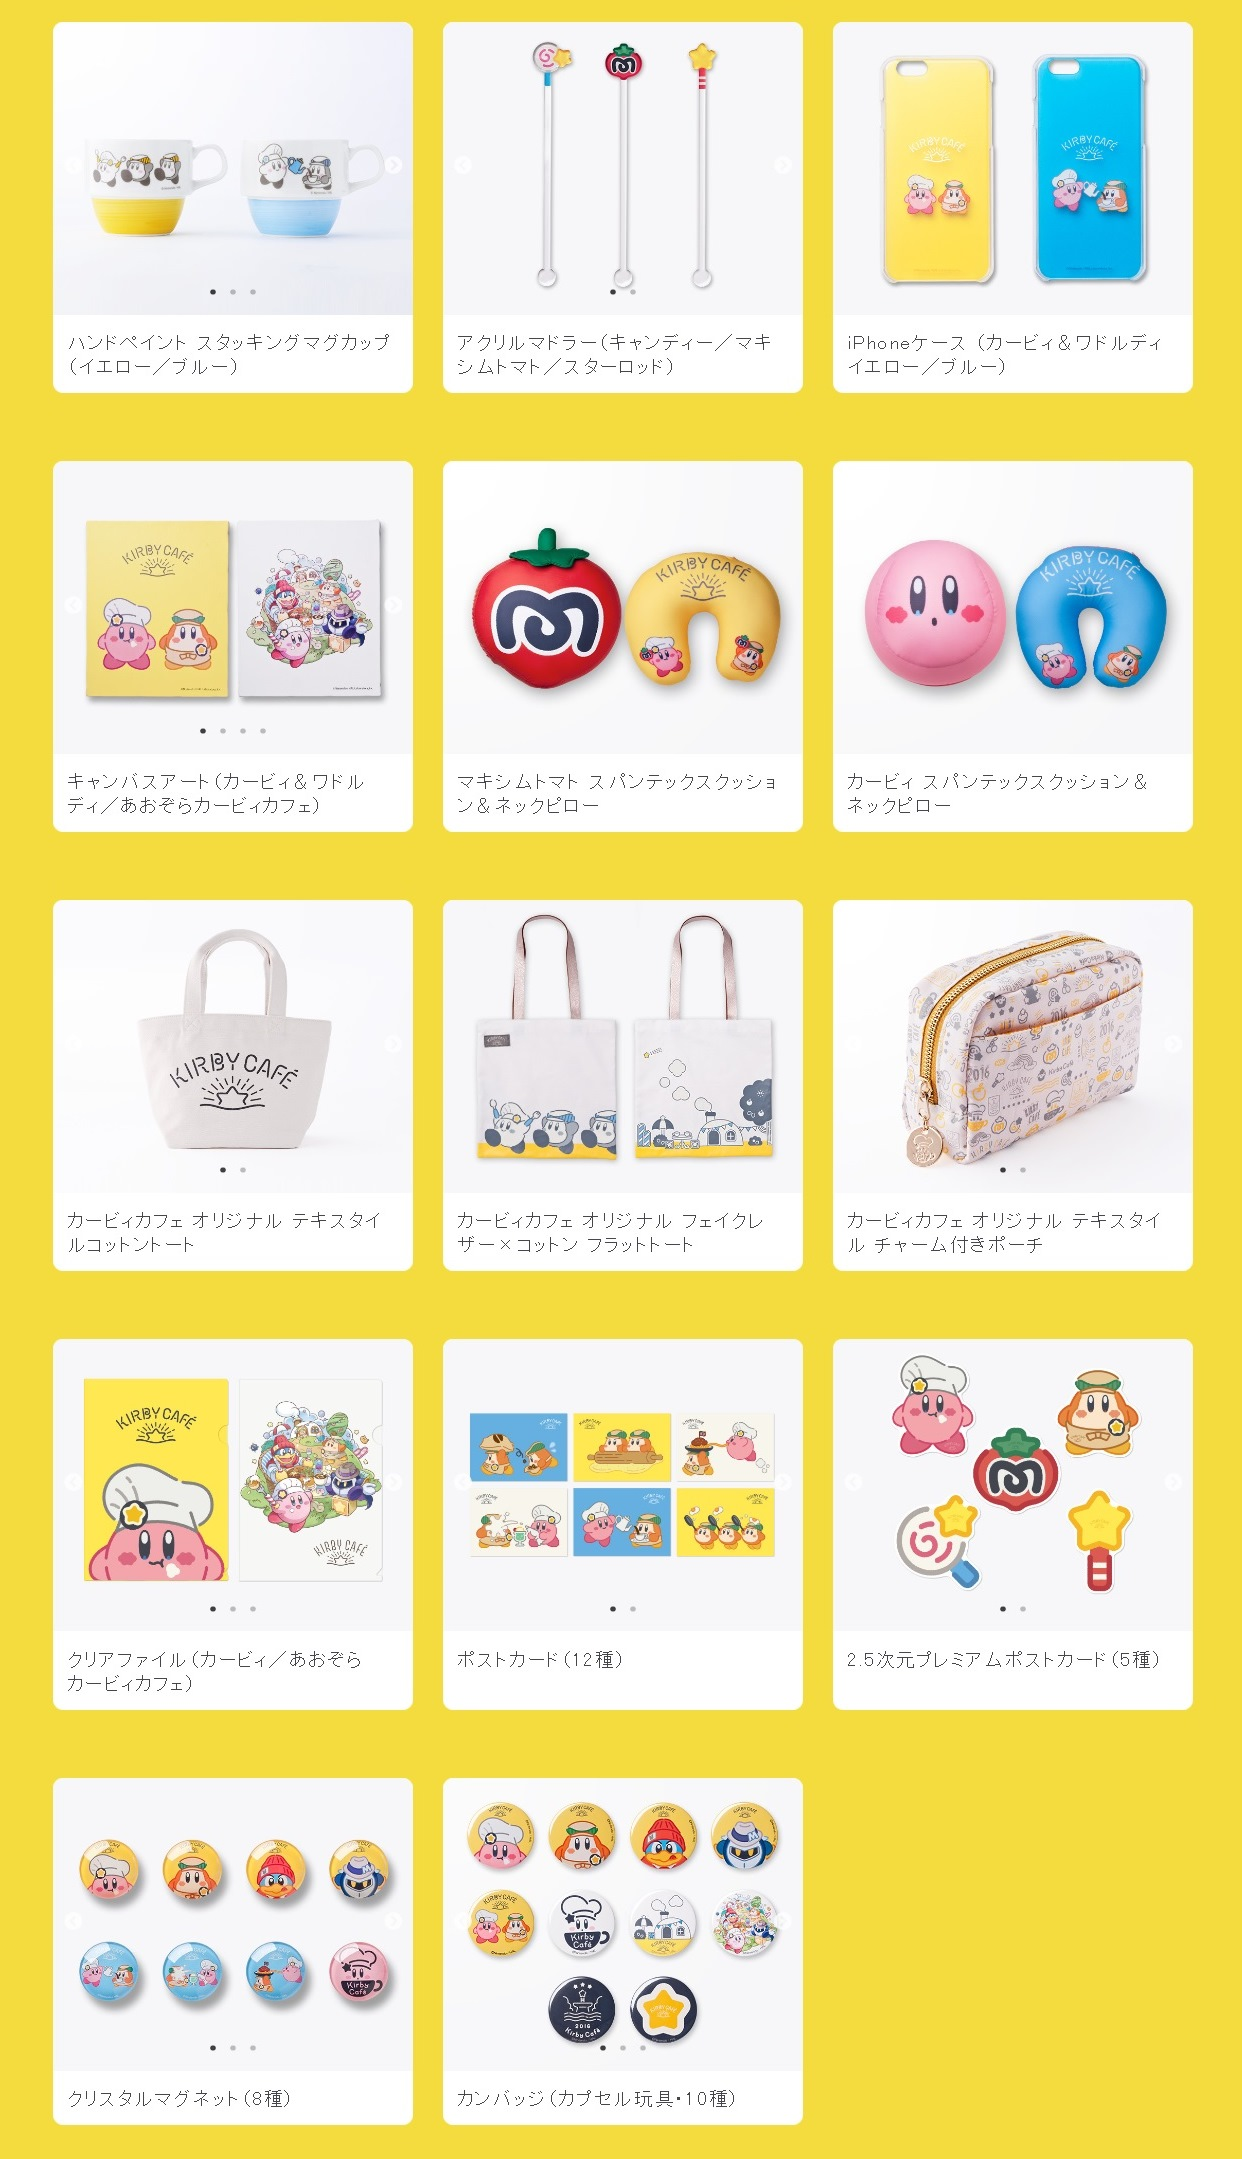 kirby-cafe-goods